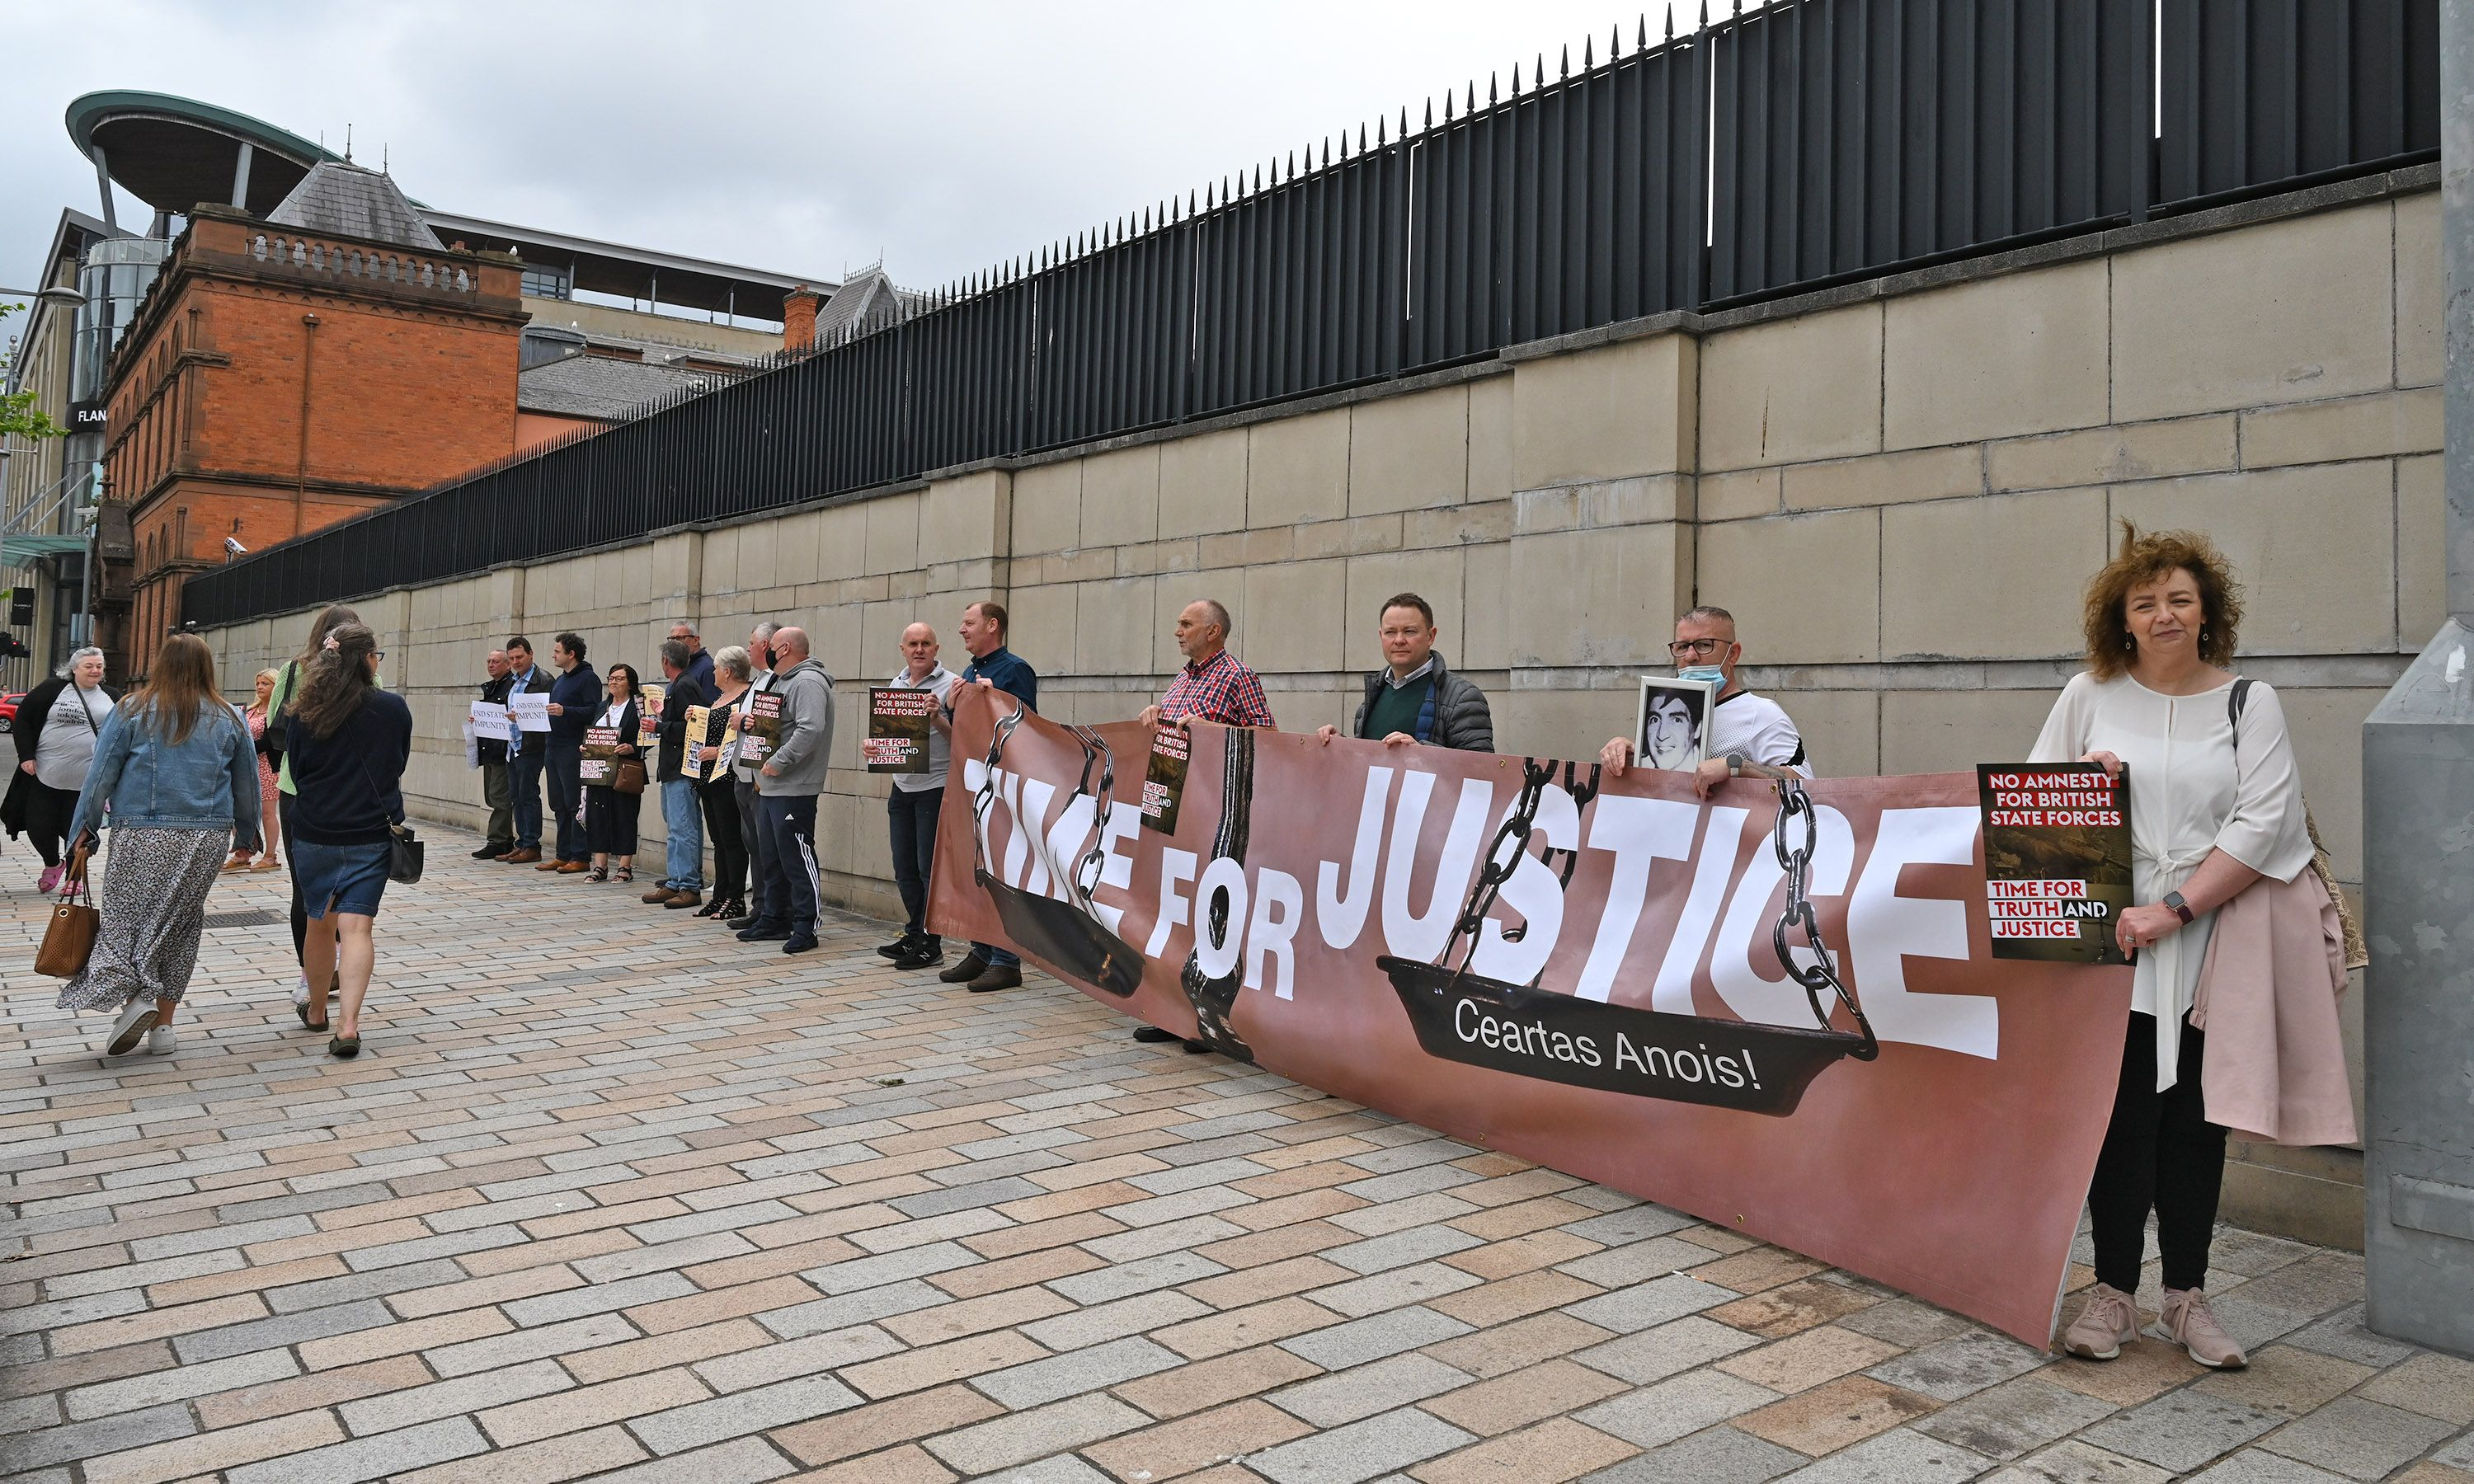 CAMPAIGNERS: Protestors at Belfast Courts after the decision not to prosecute British soldiers